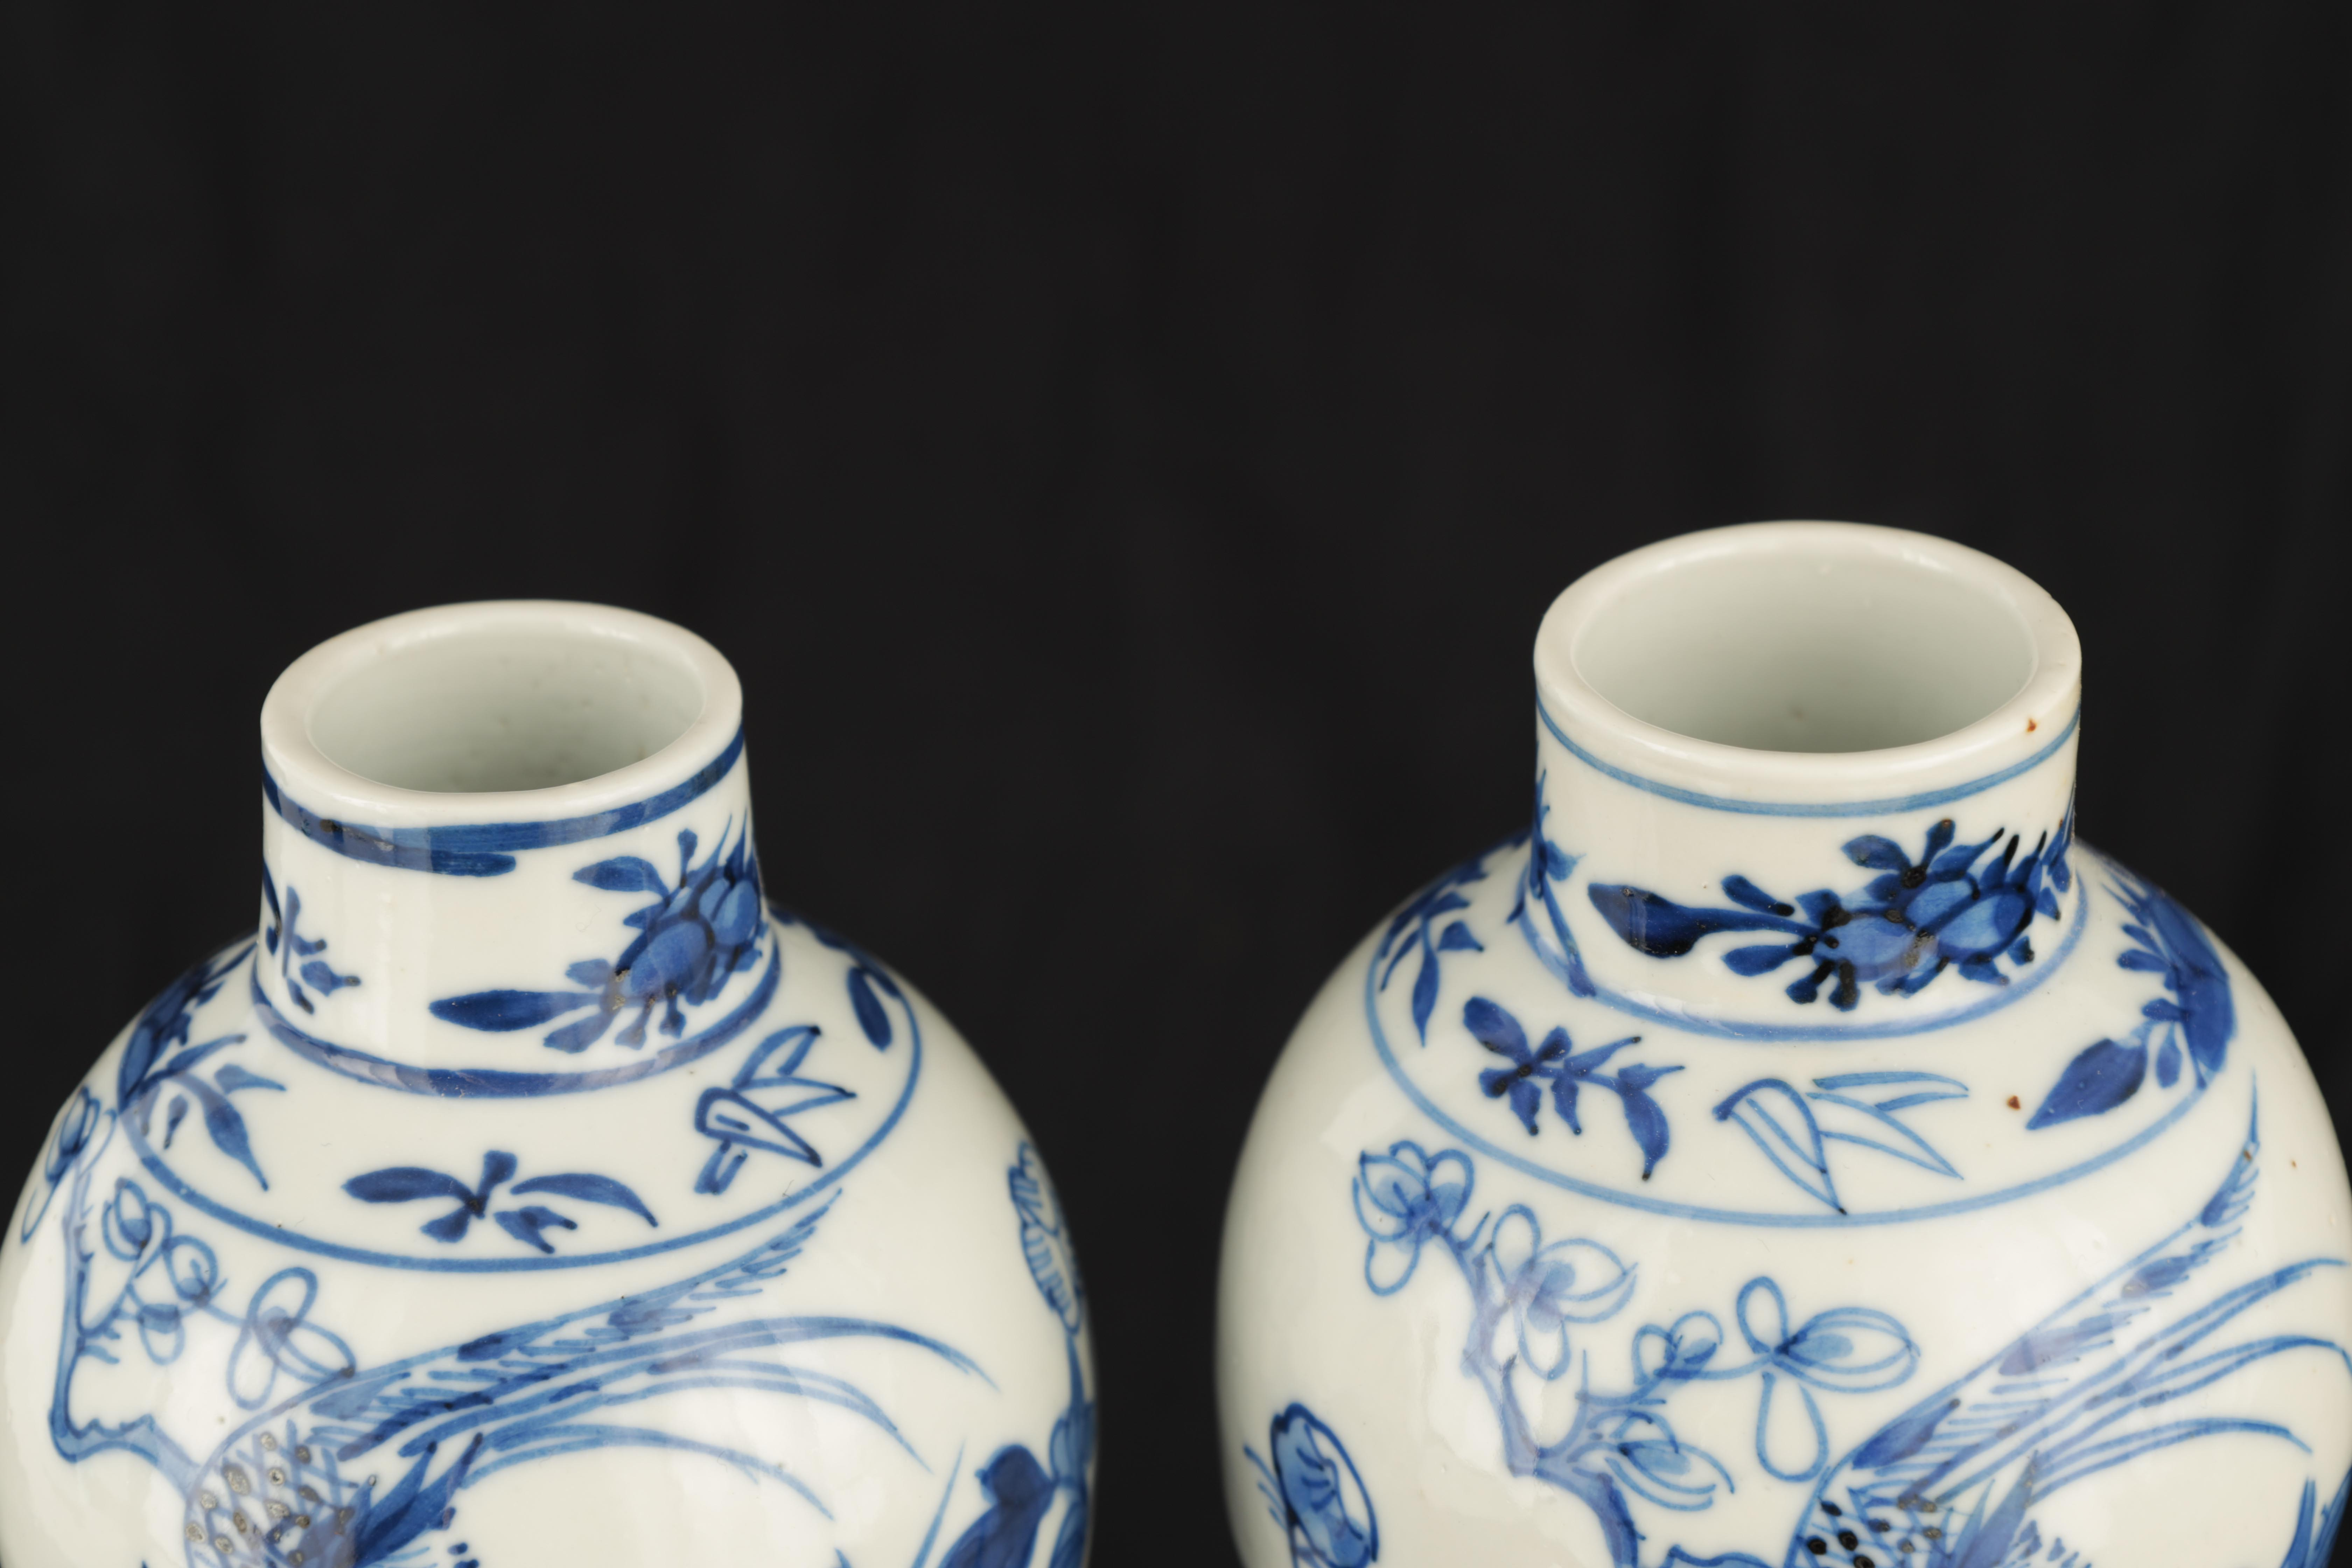 A PAIR OF 19TH CENTURY CHINESE BLUE AND WHITE VASES decorated with blossoming trees and birds 17cm - Image 6 of 9